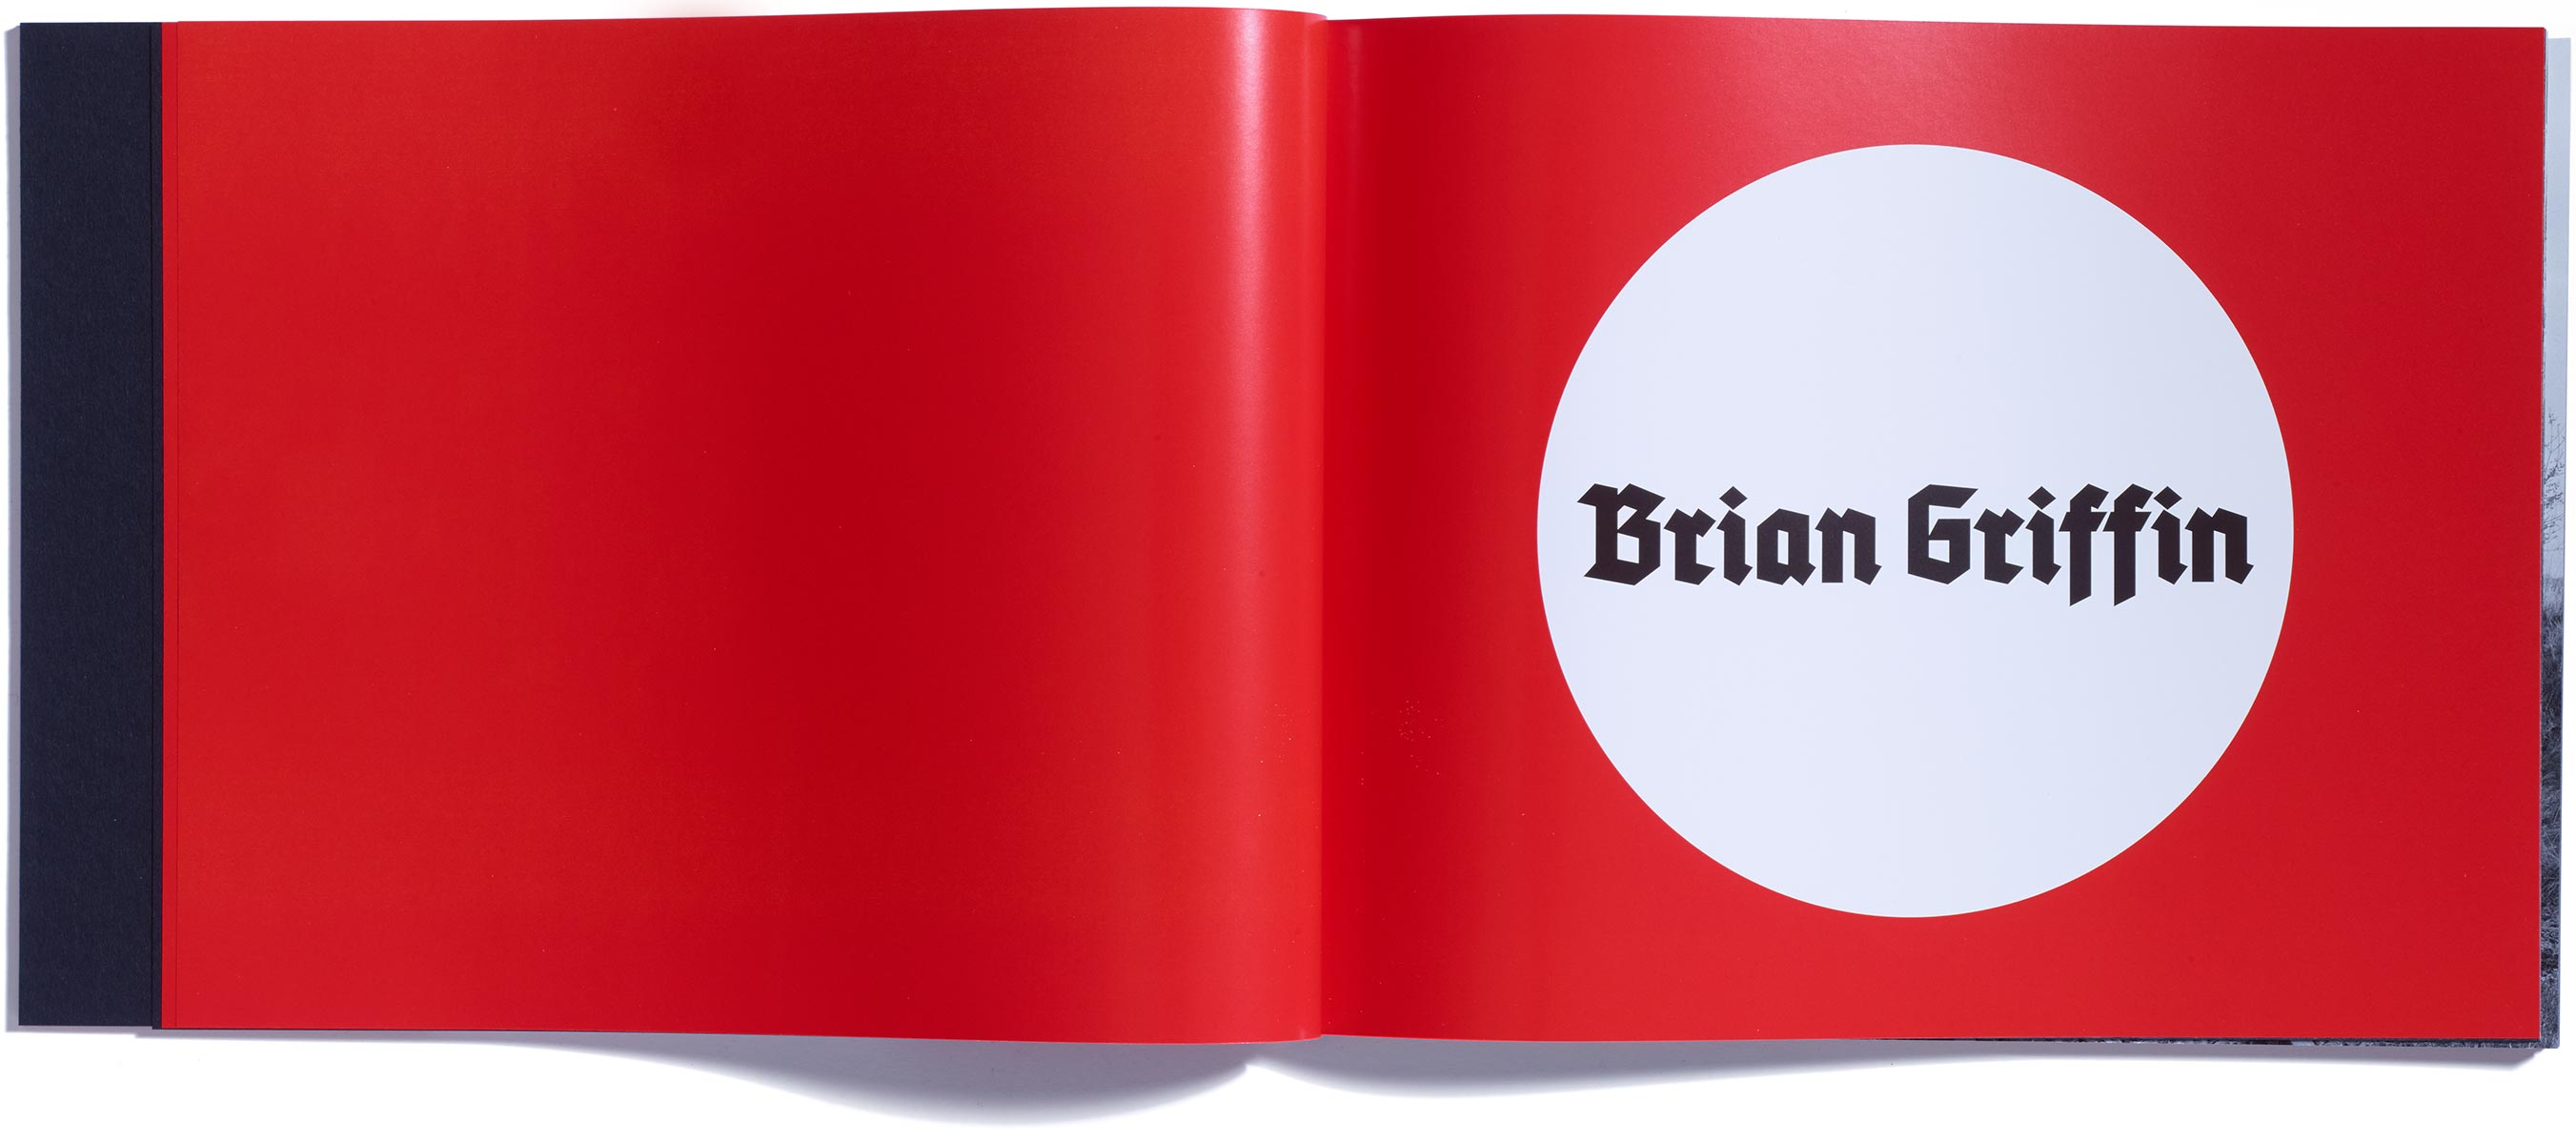 Himmelstrasse, Brian Griffin, published by Browns Editions, designed by Browns Design, book